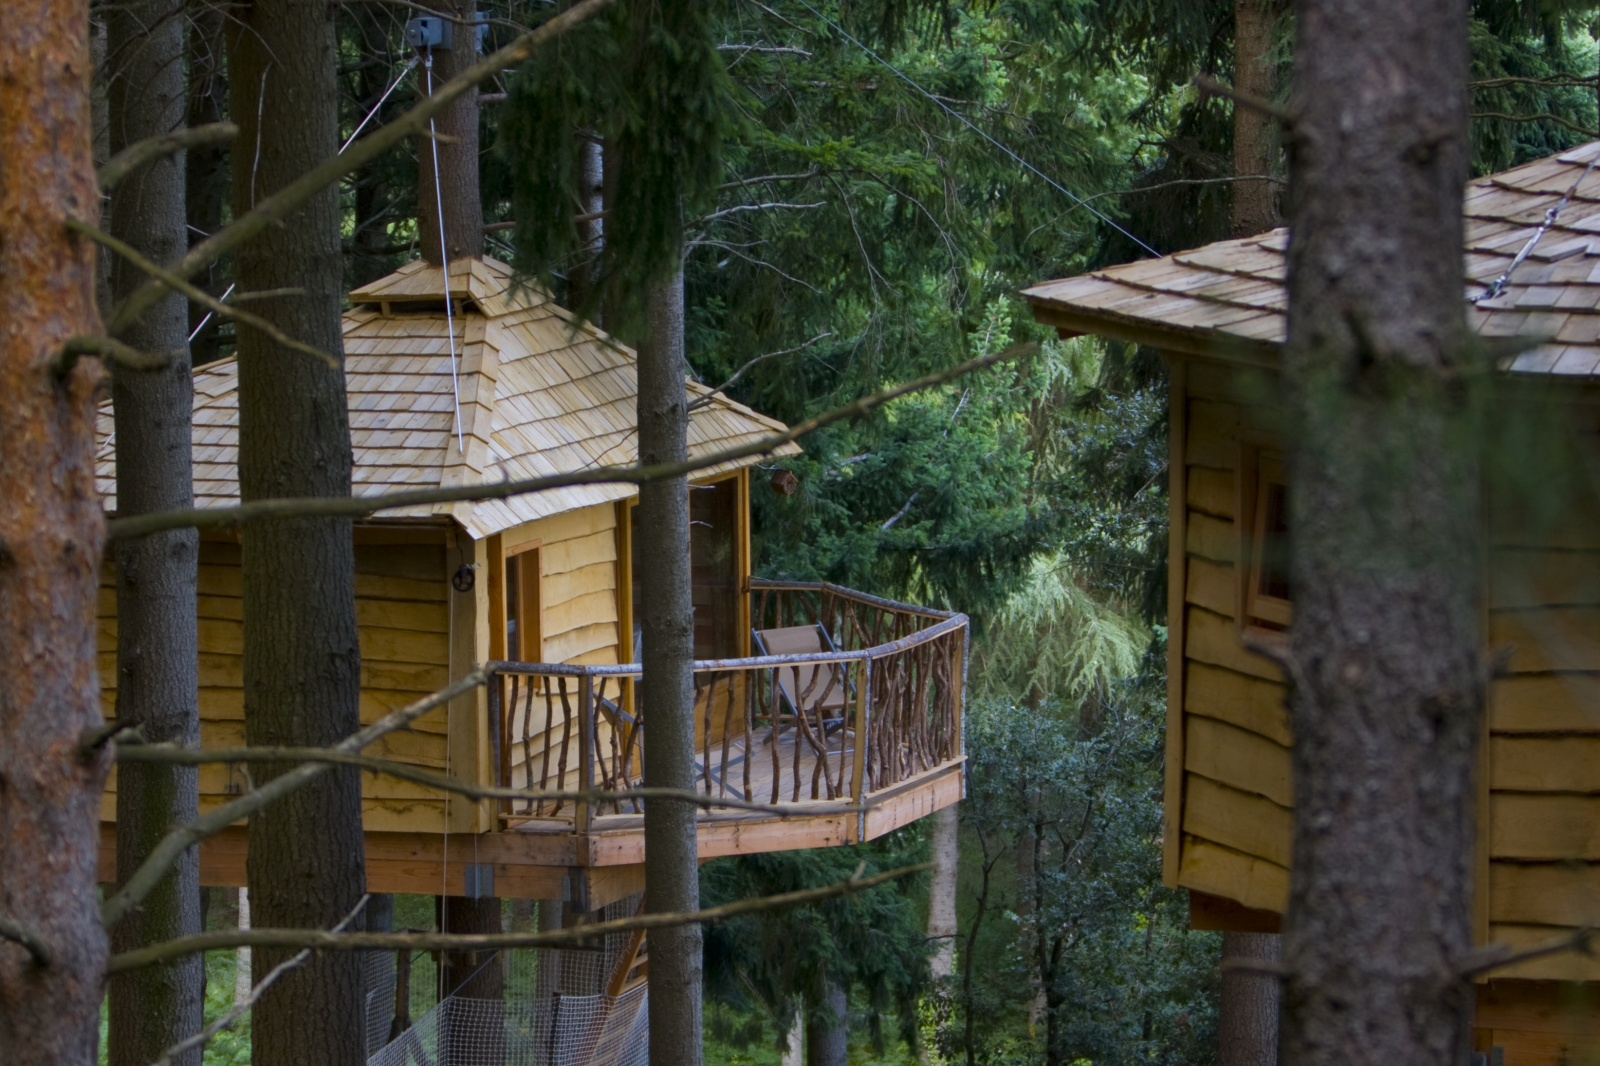 Patagonia South America >> Cabanes Als Arbres - Catalan tree house huts